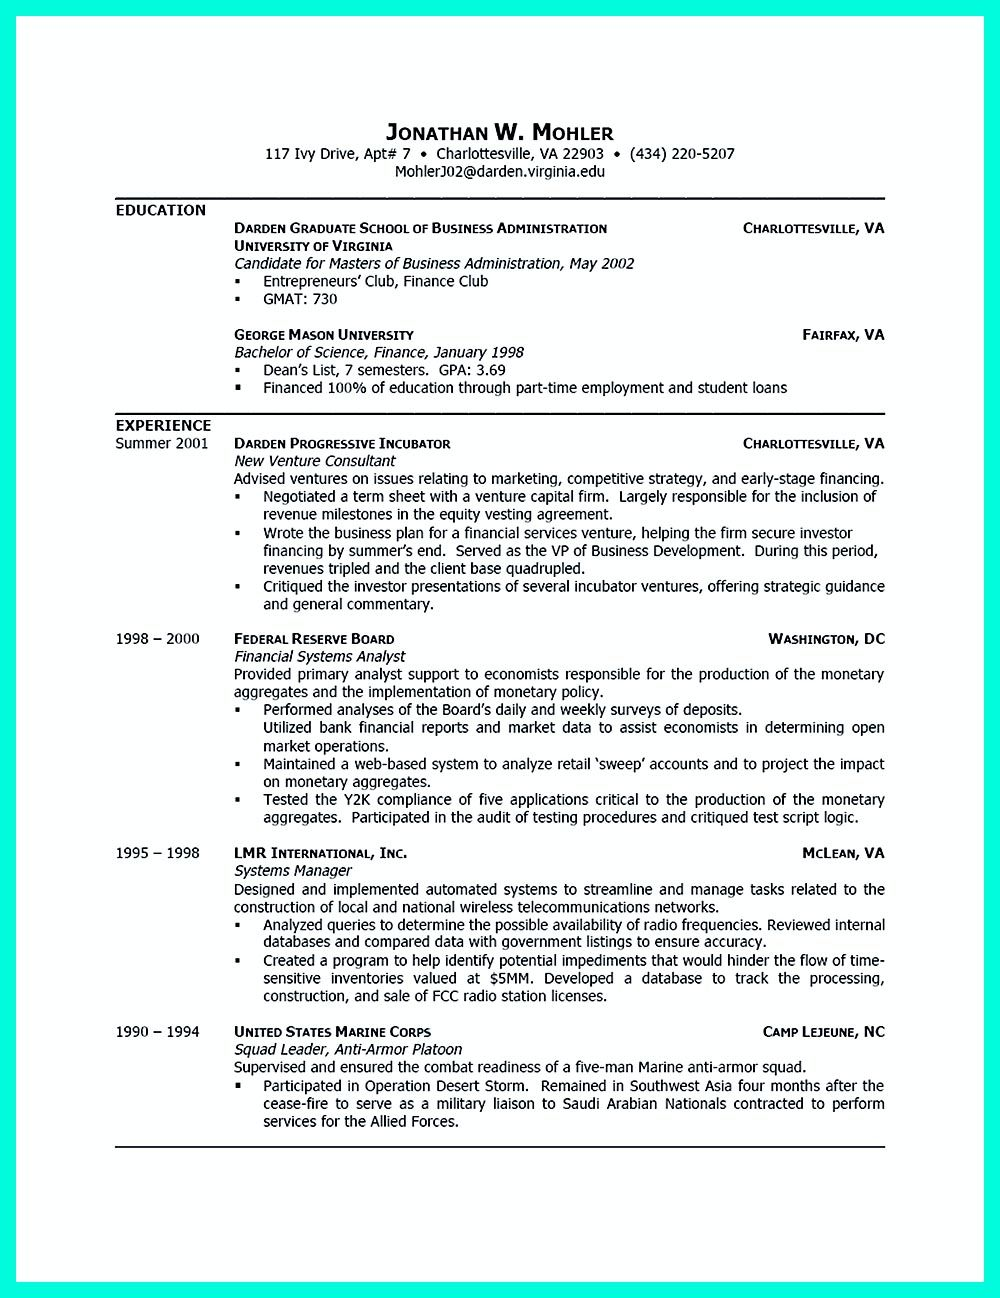 Resume Templates For College Students College Resume Is Designed For College Students Either With Or